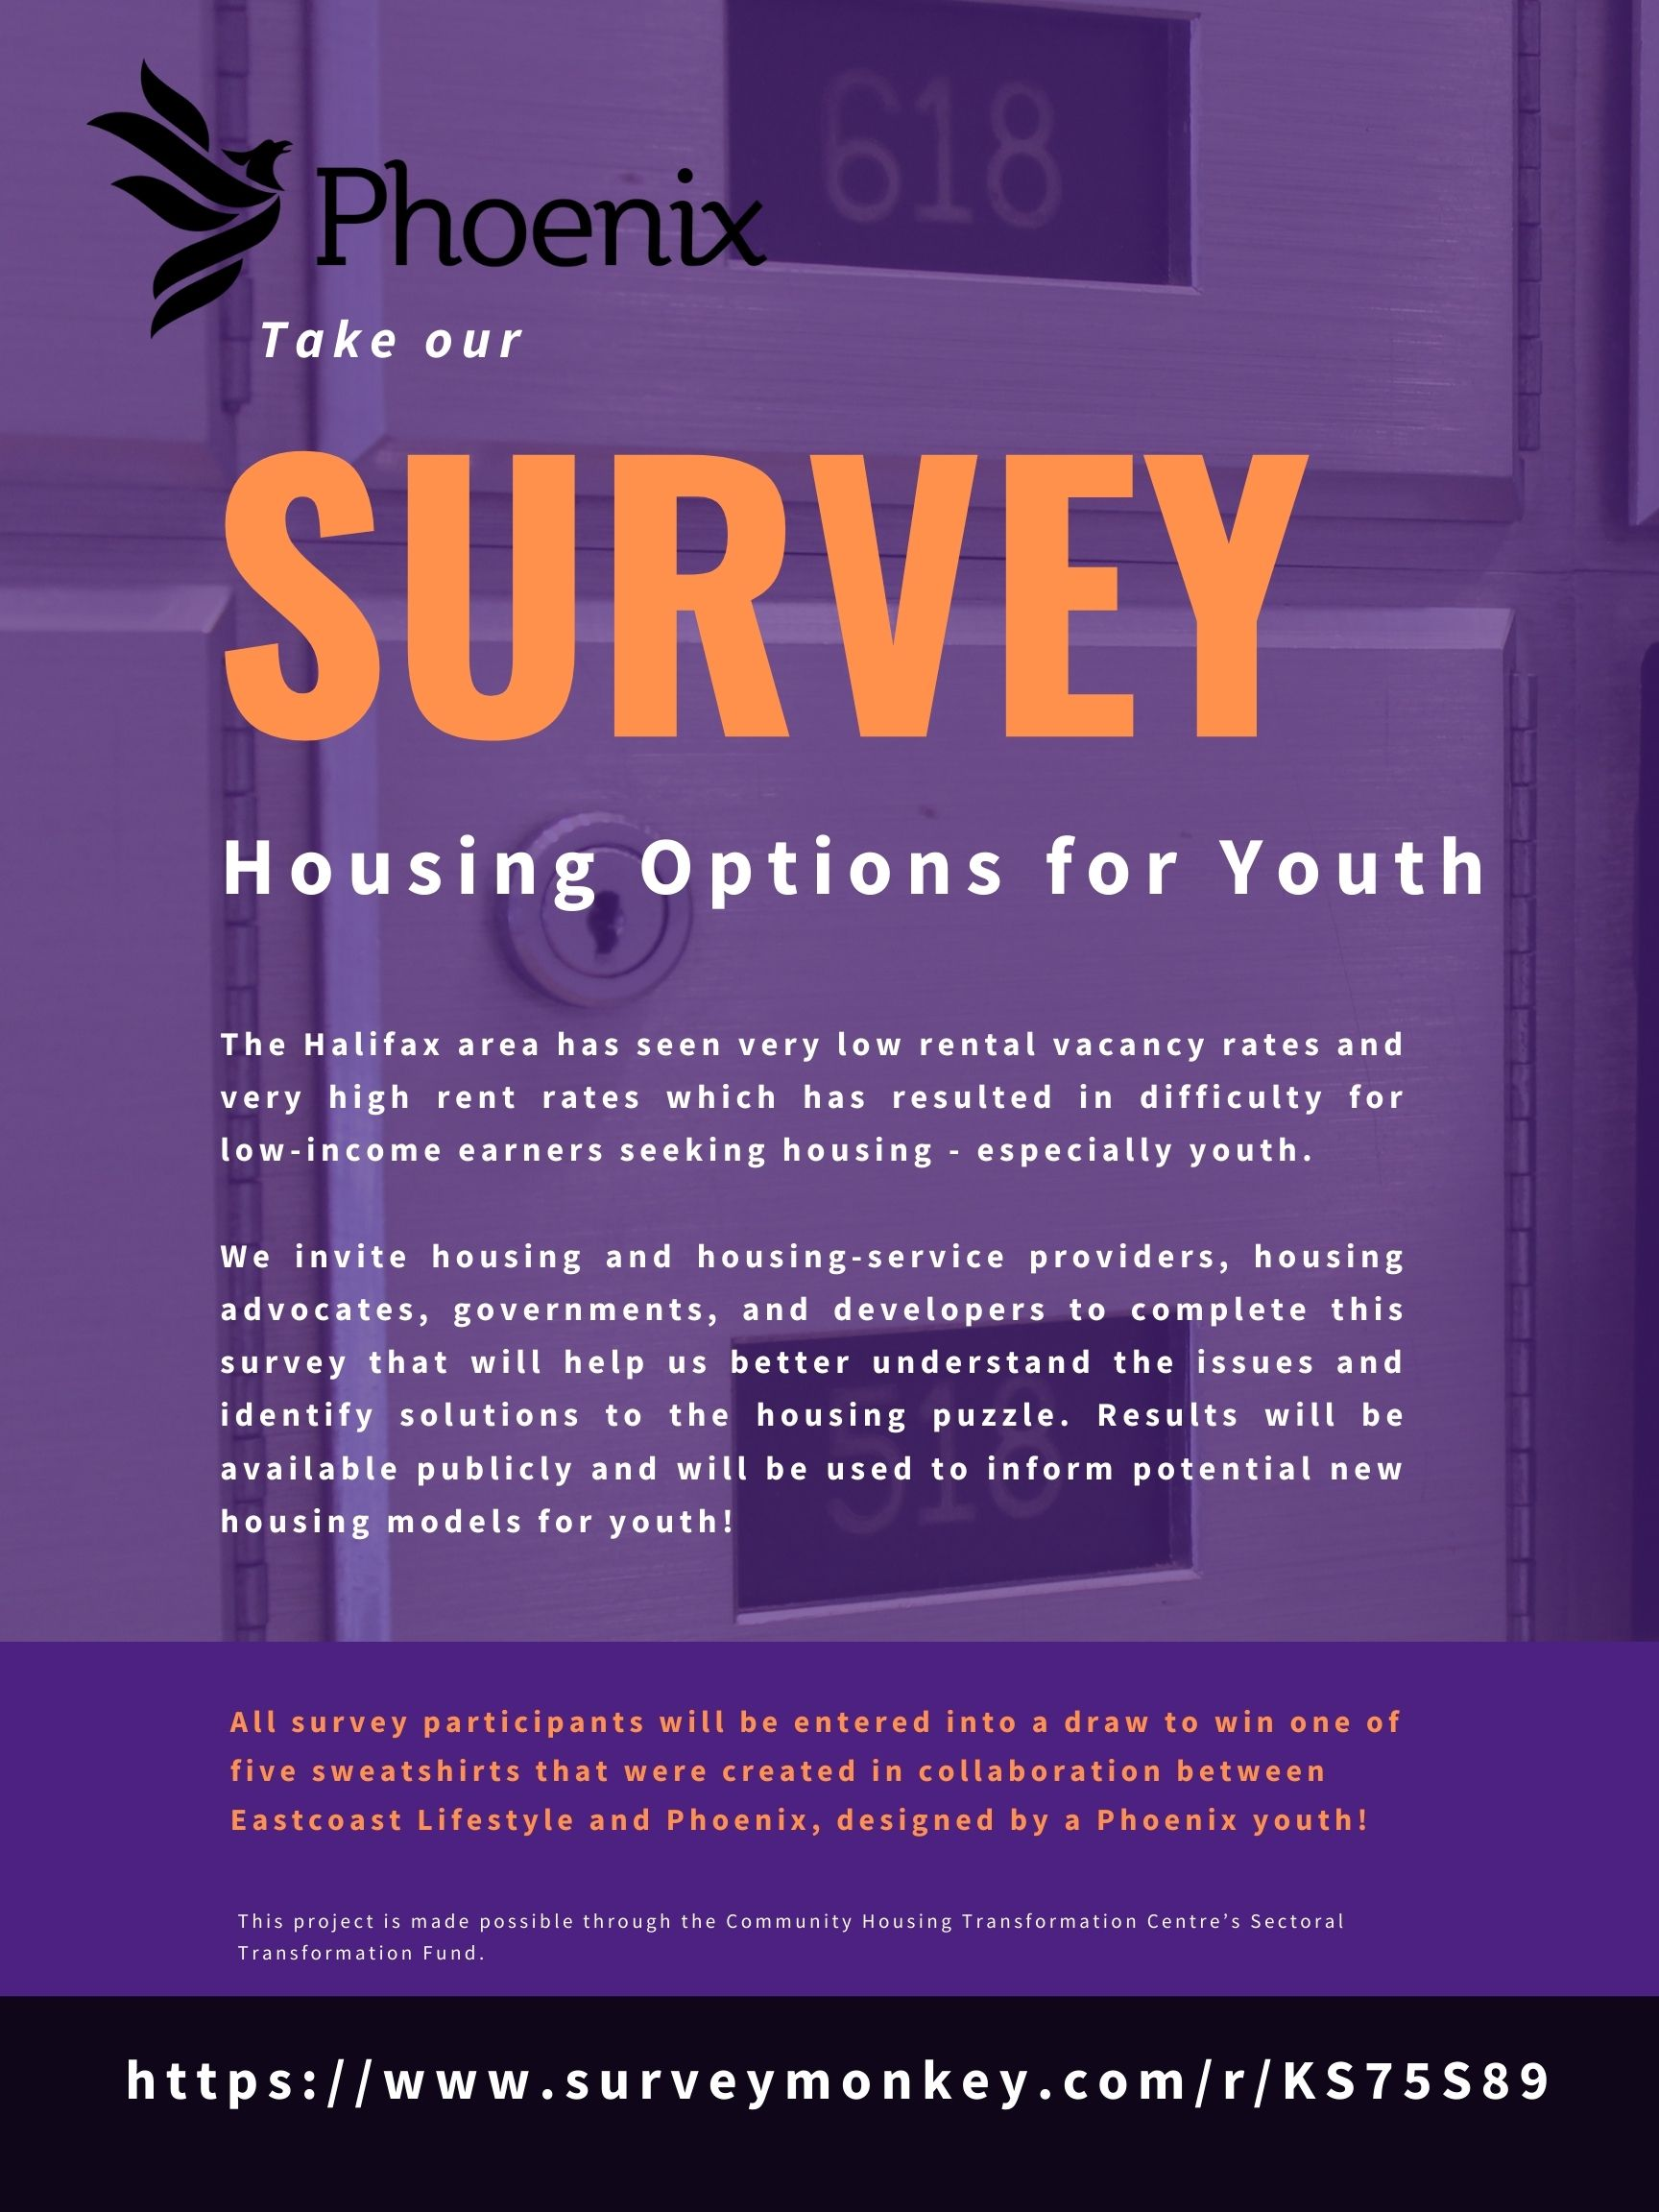 Please help us circulate our survey on housing options for youth!